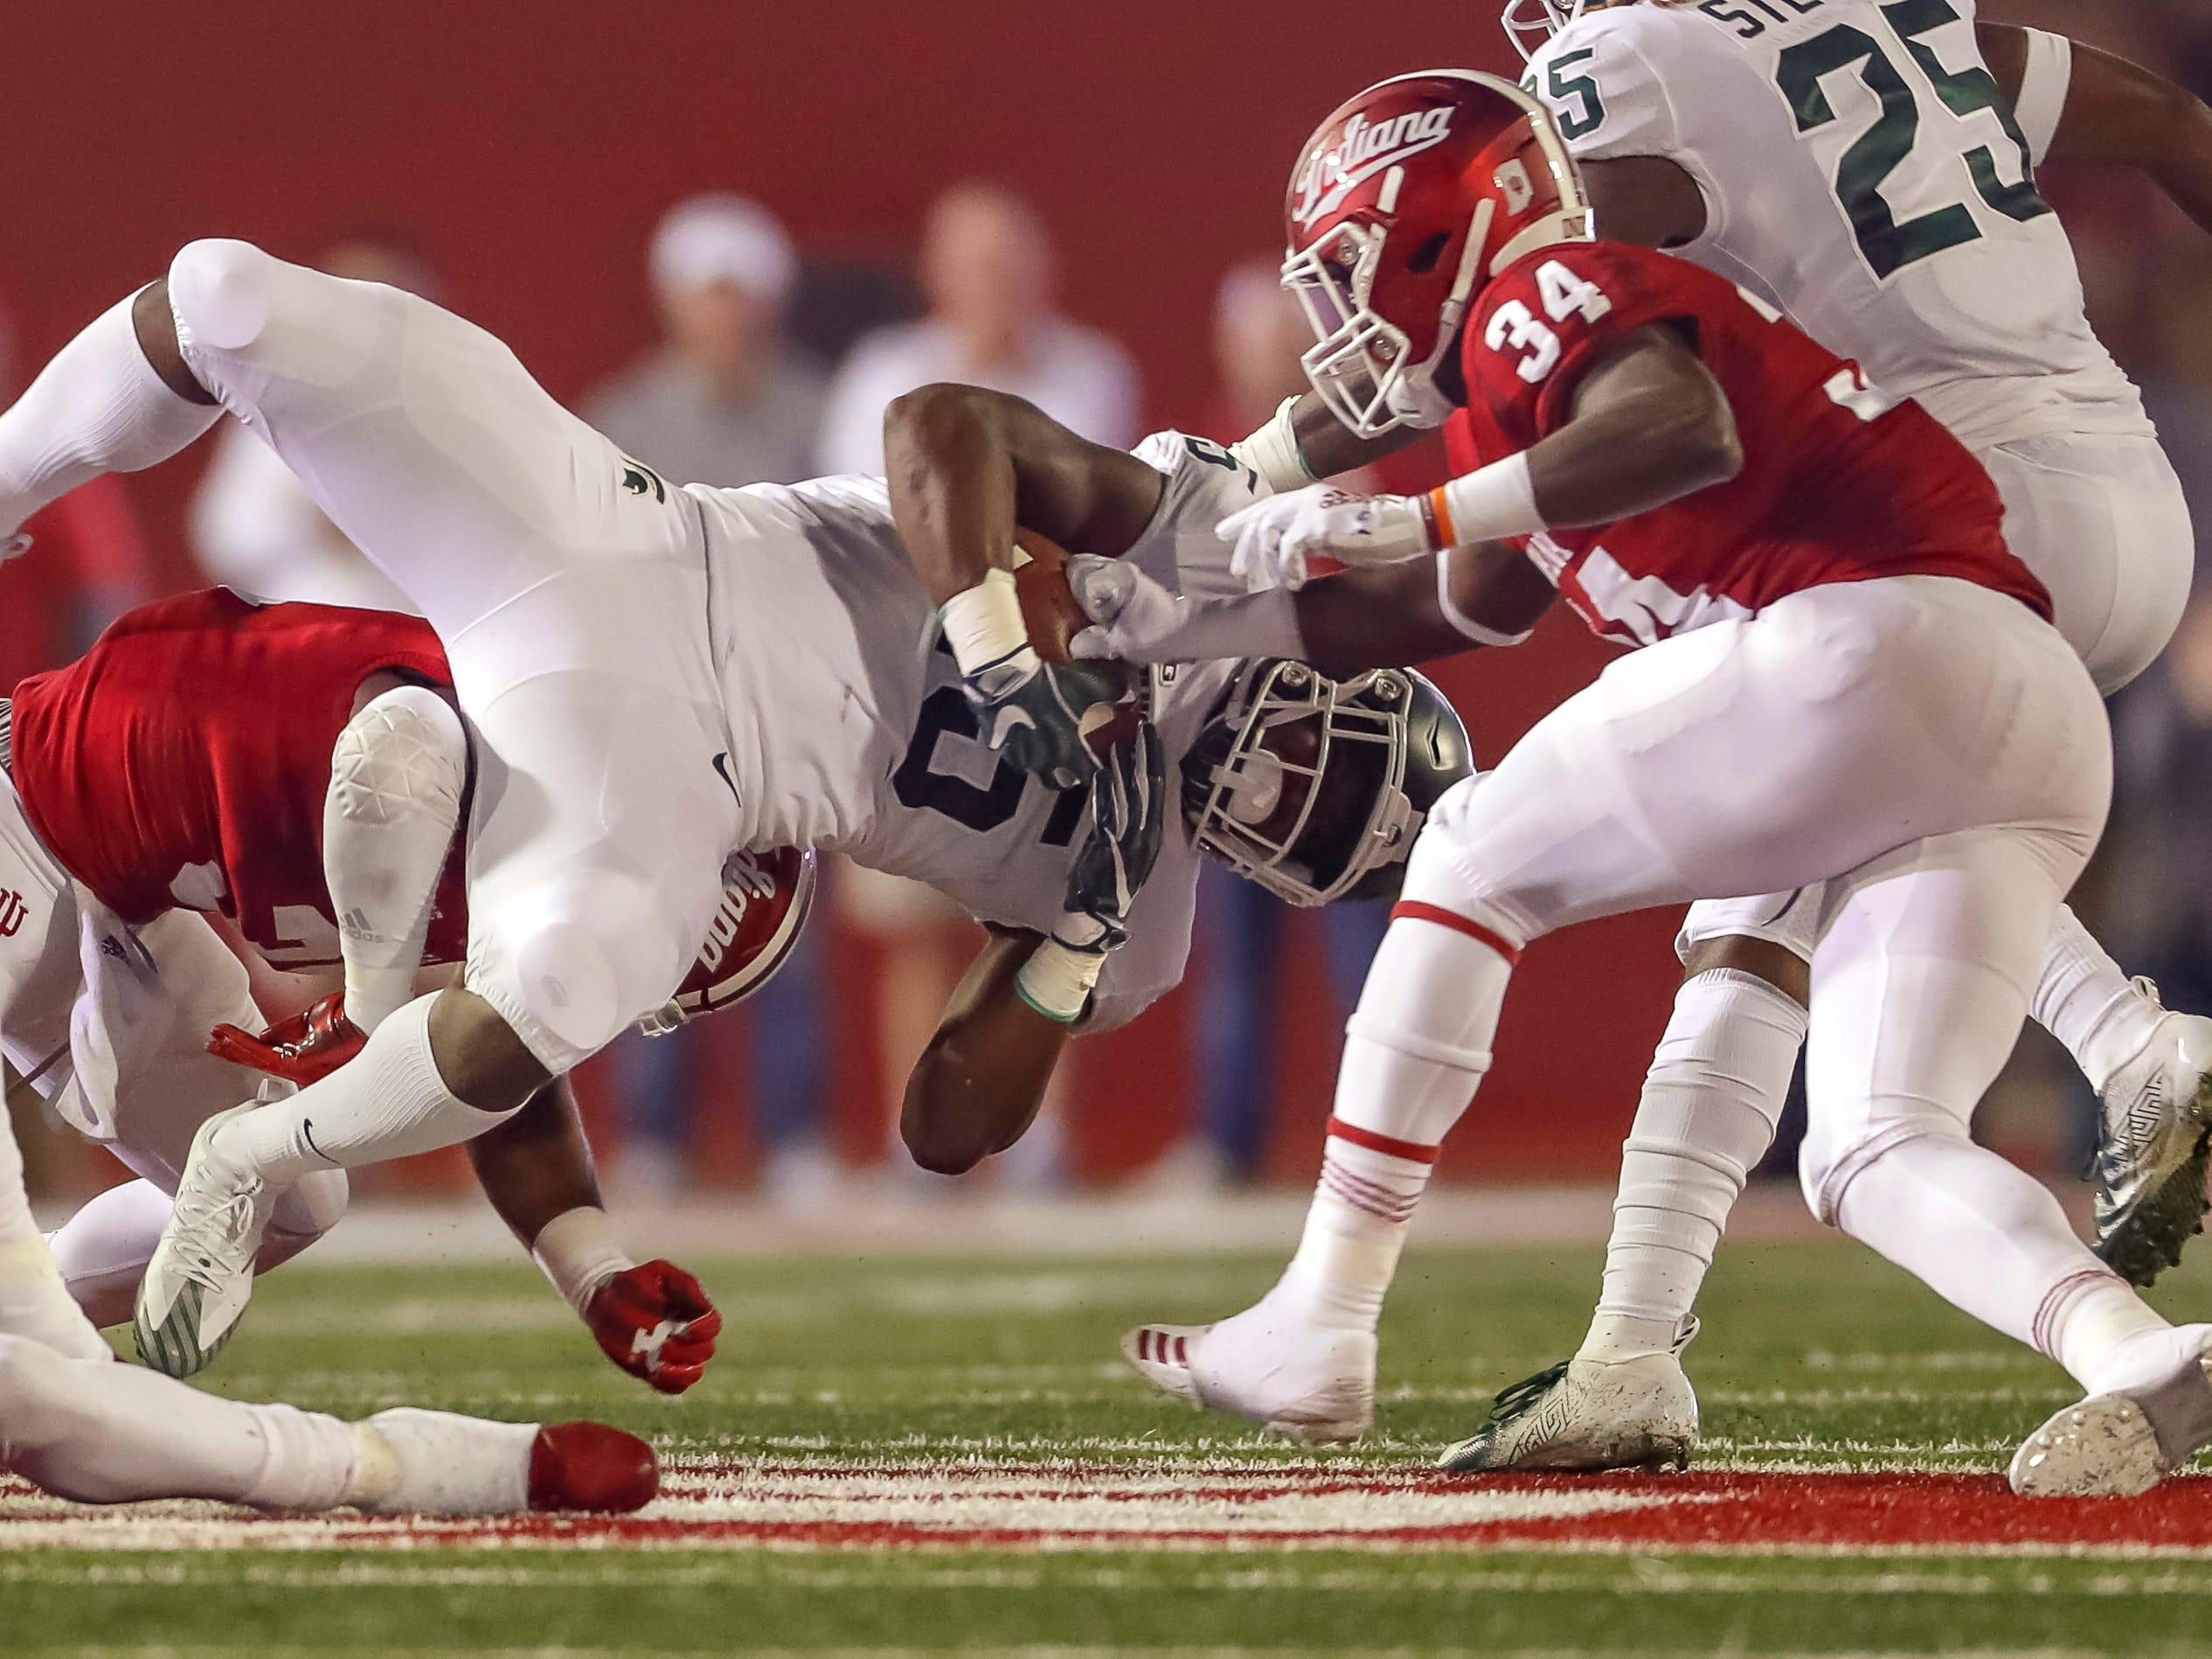 La'Darius Jefferson #15 of the Michigan State Spartans runs the ball as Cam Jones #34 of the Indiana Hoosiers punches the ball away causing a fumble during the first half of action at Memorial Stadium on September 22, 2018 in Bloomington, Indiana.